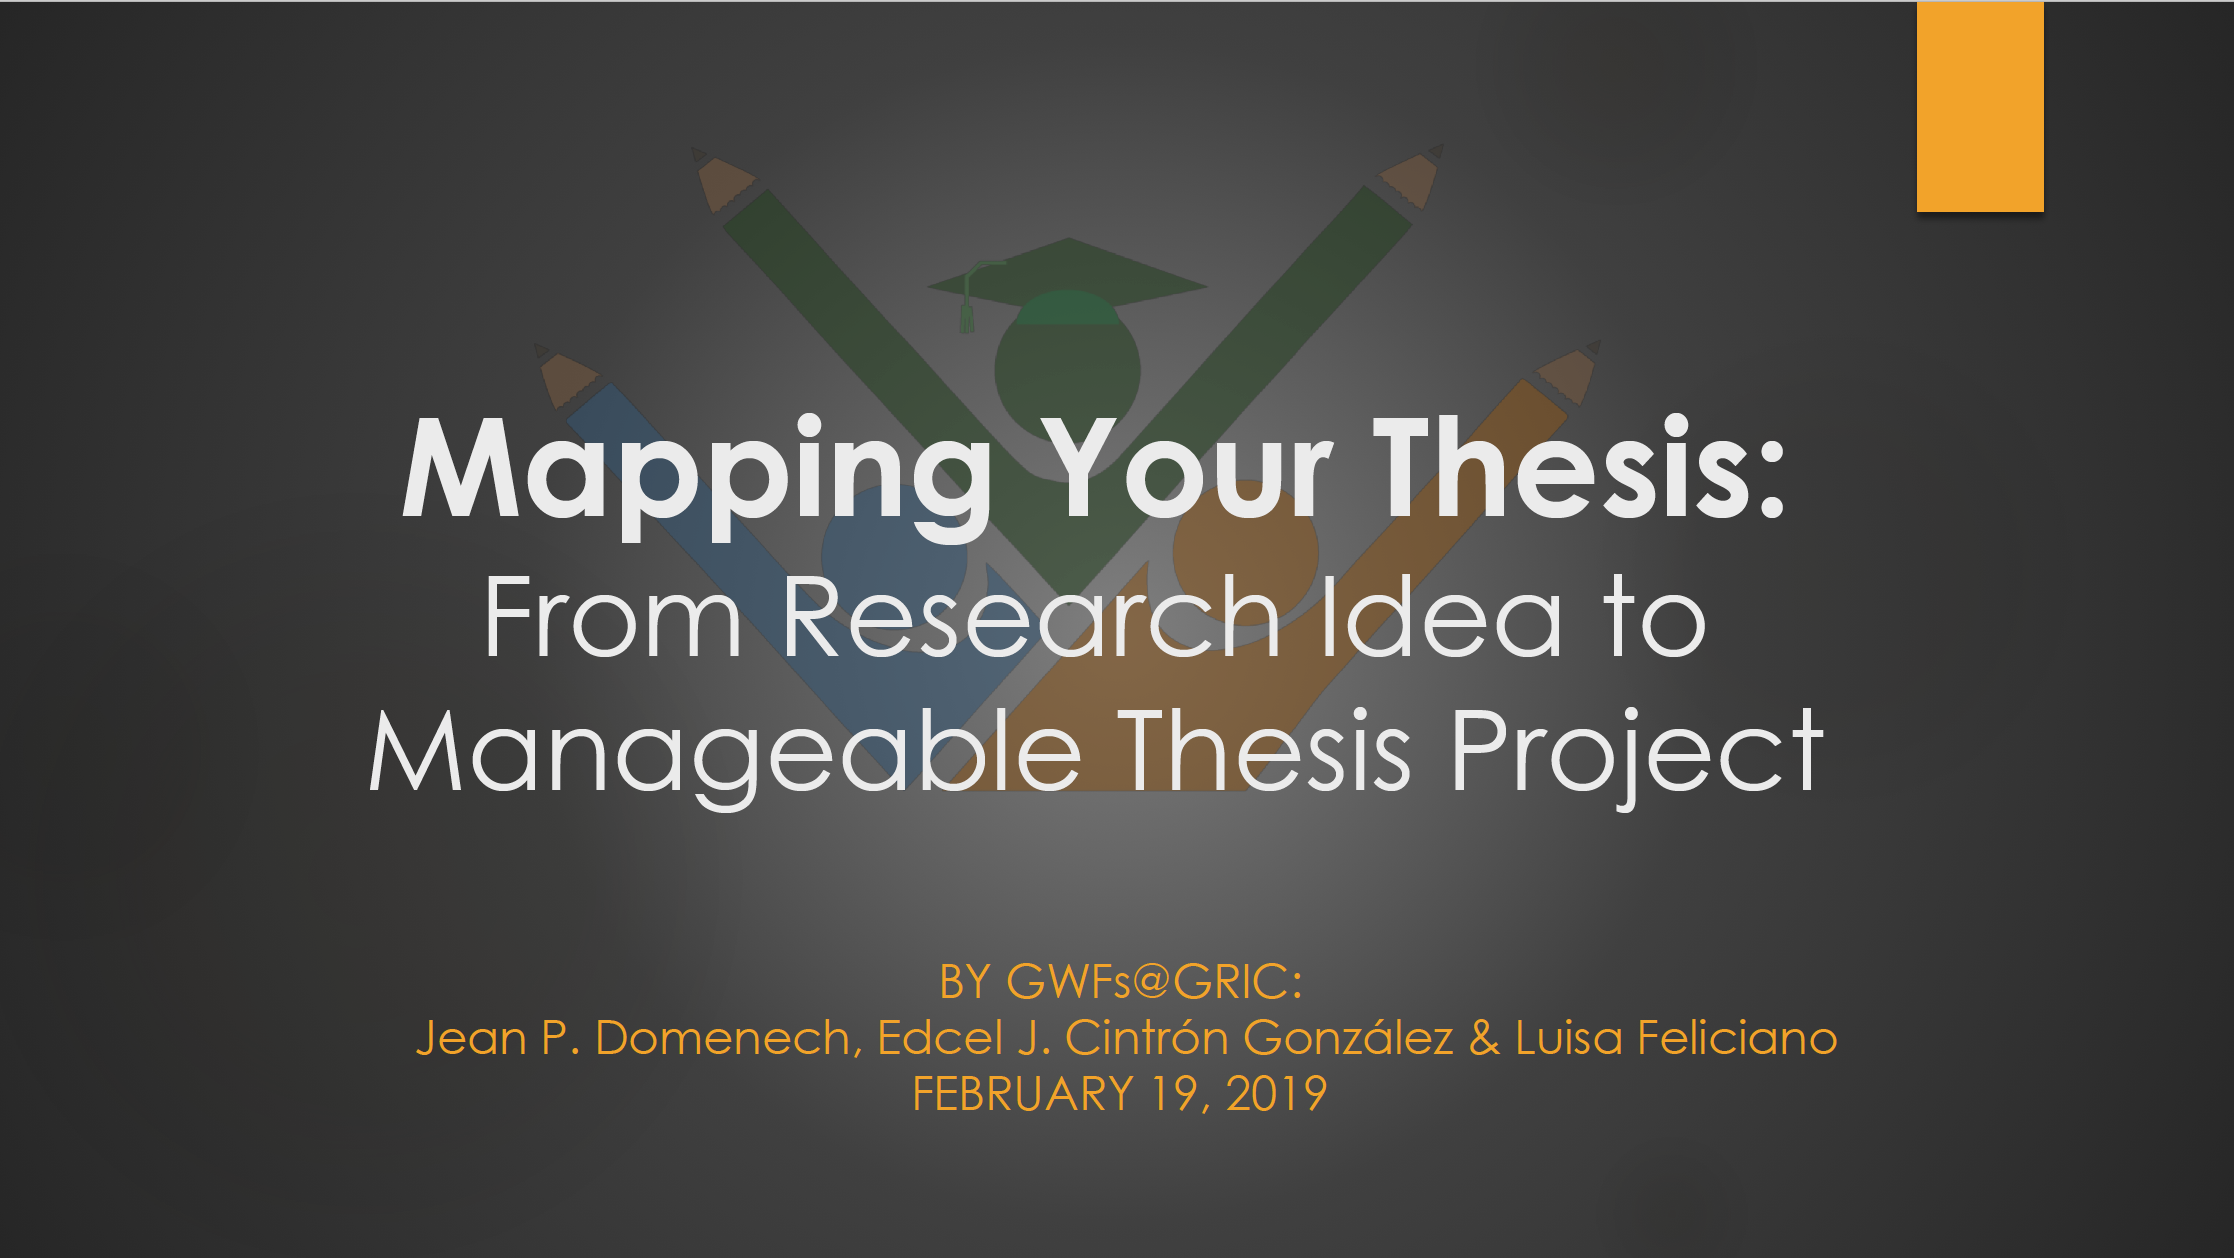 Mapping thesis presentation